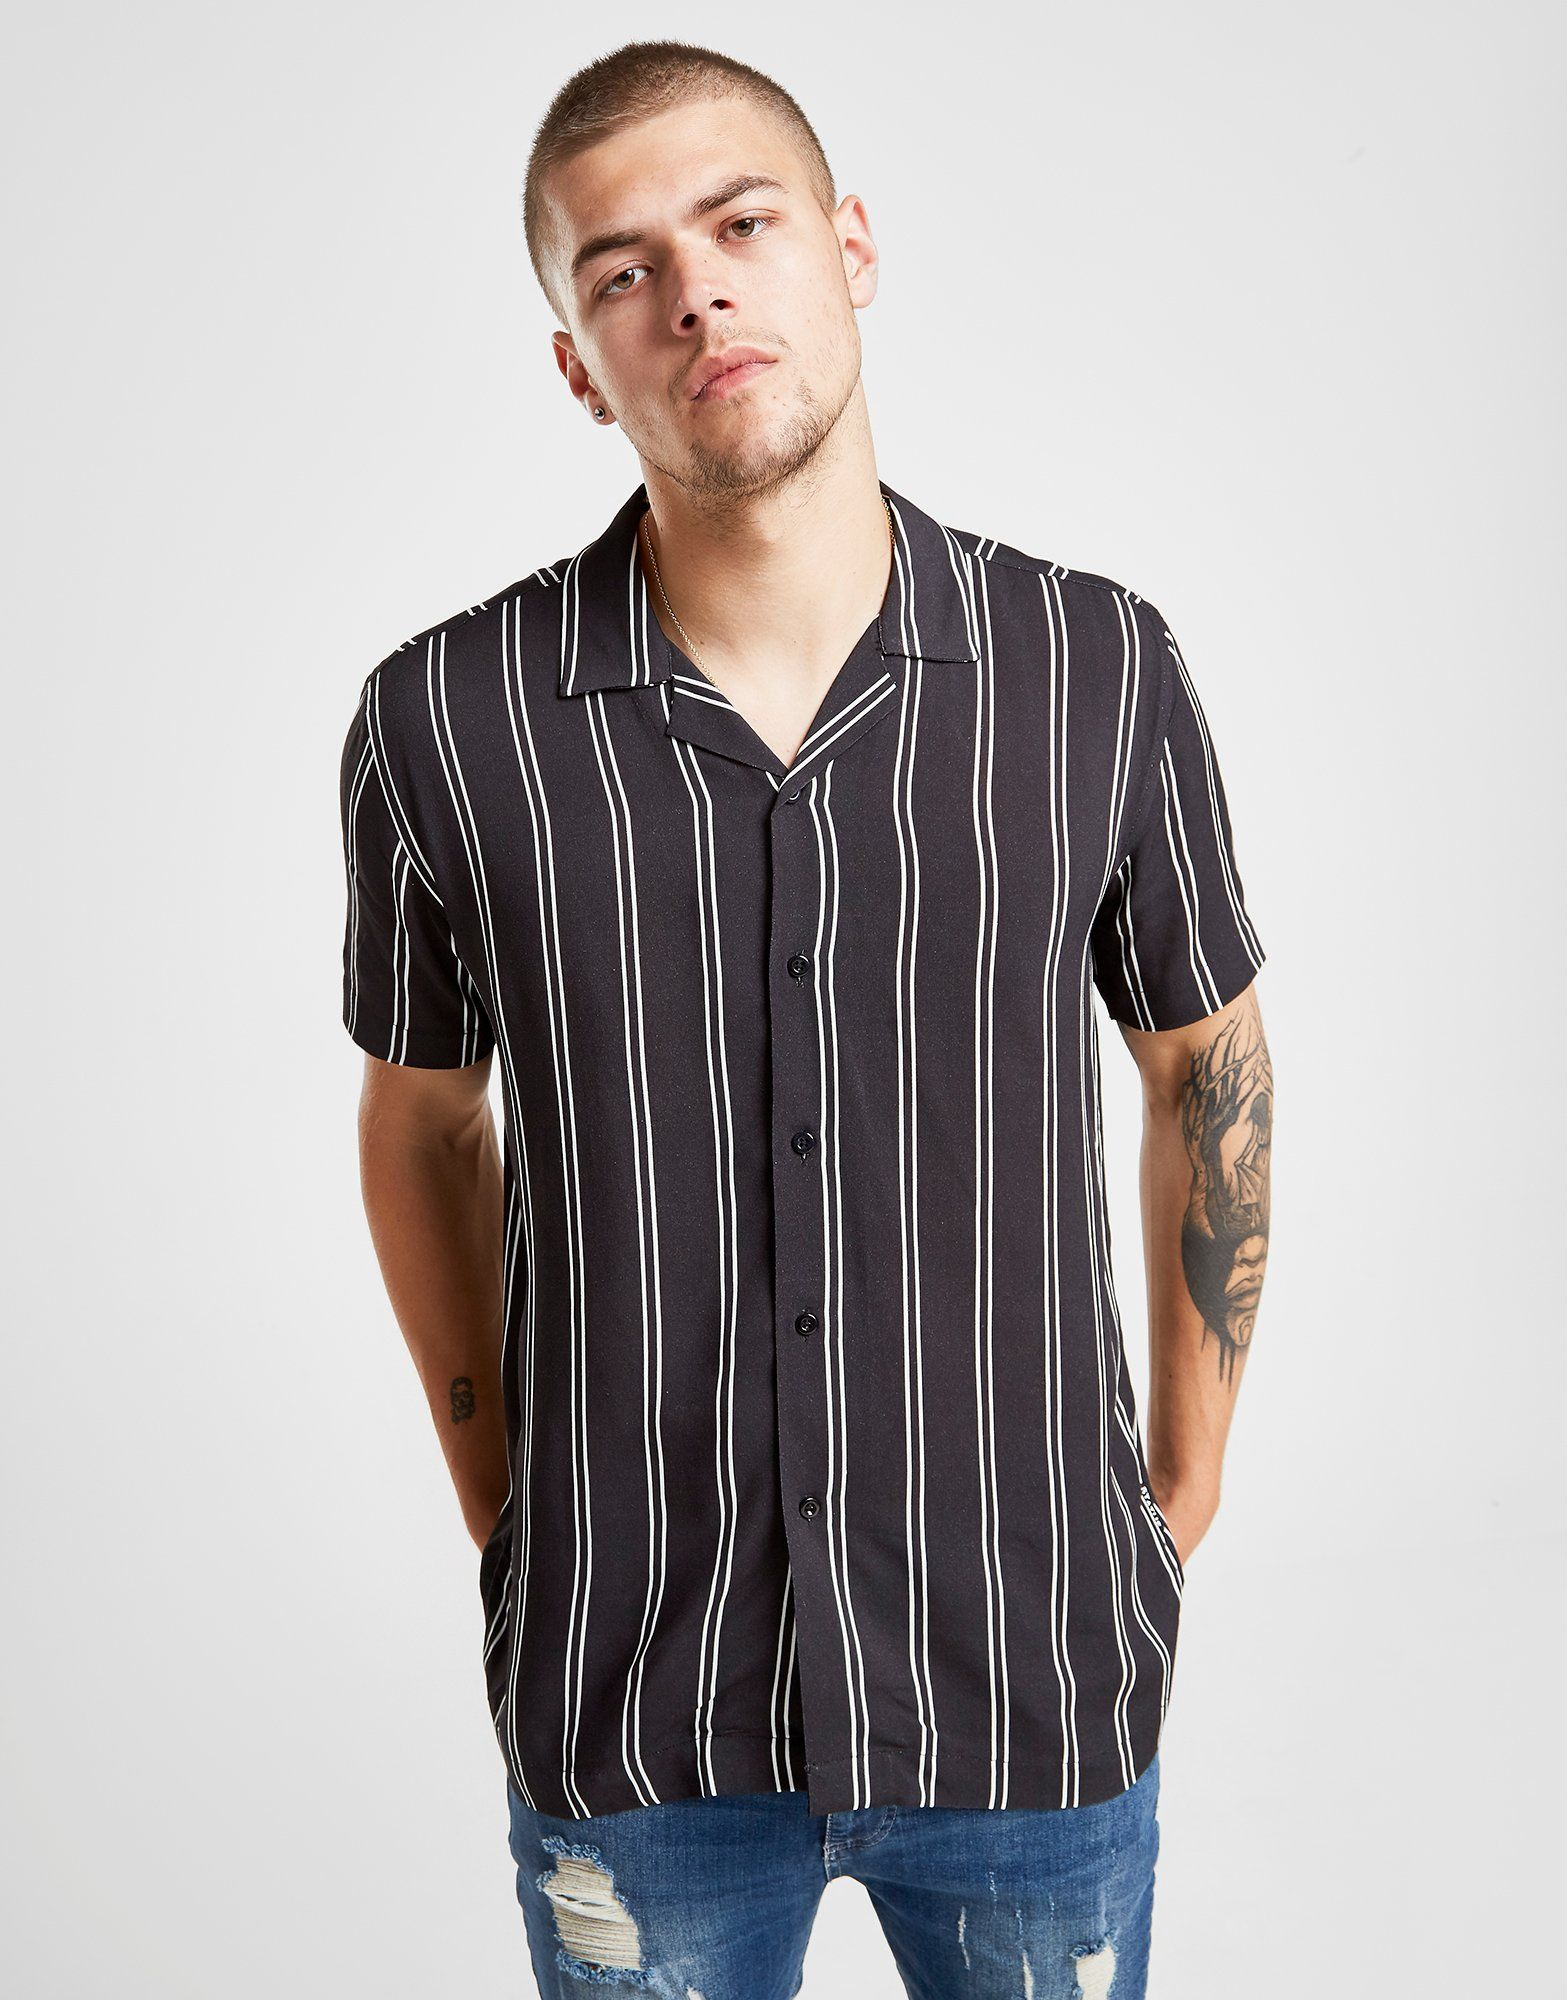 Status Vegas Stripe Short Sleeve Shirt by Status